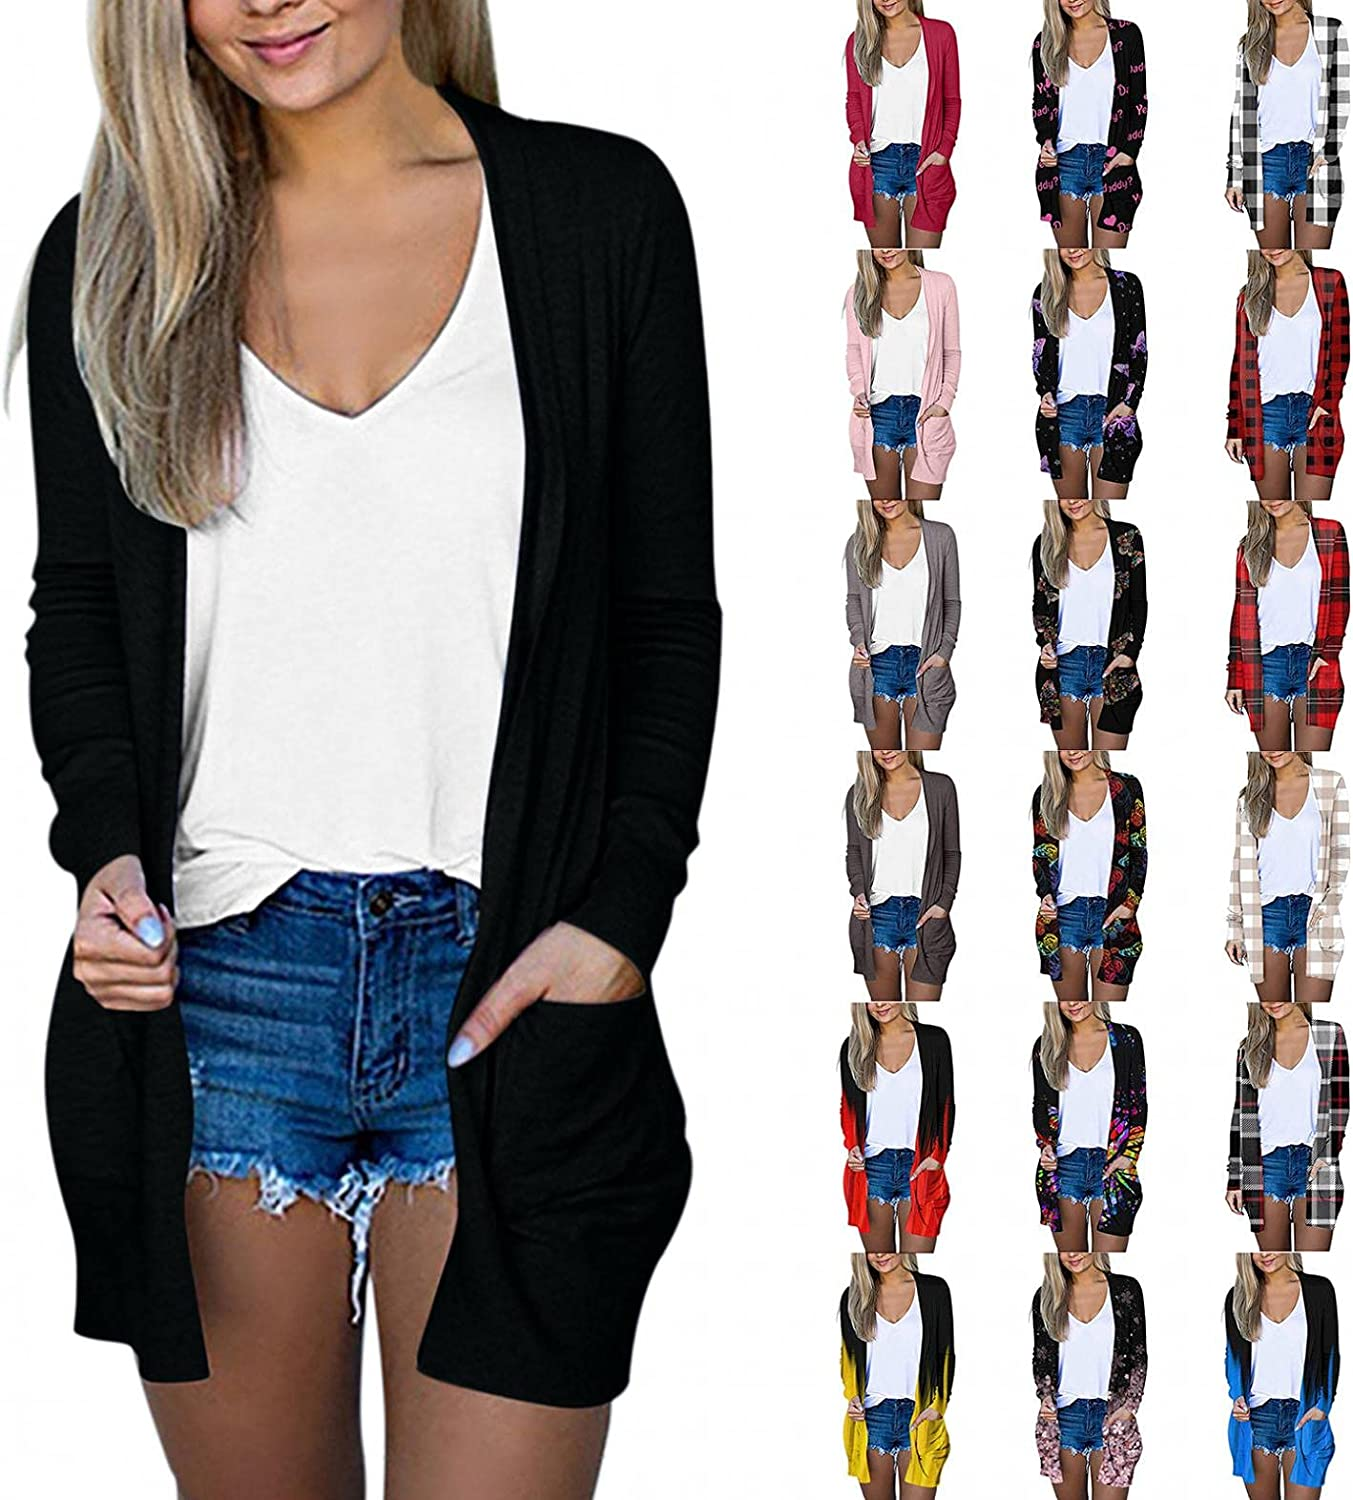 AODONG Cardigan Sweaters for Women, Womens Cardigan with Pockets Plus Size Soft Sweaters Long Sleeve Fashion Outwear